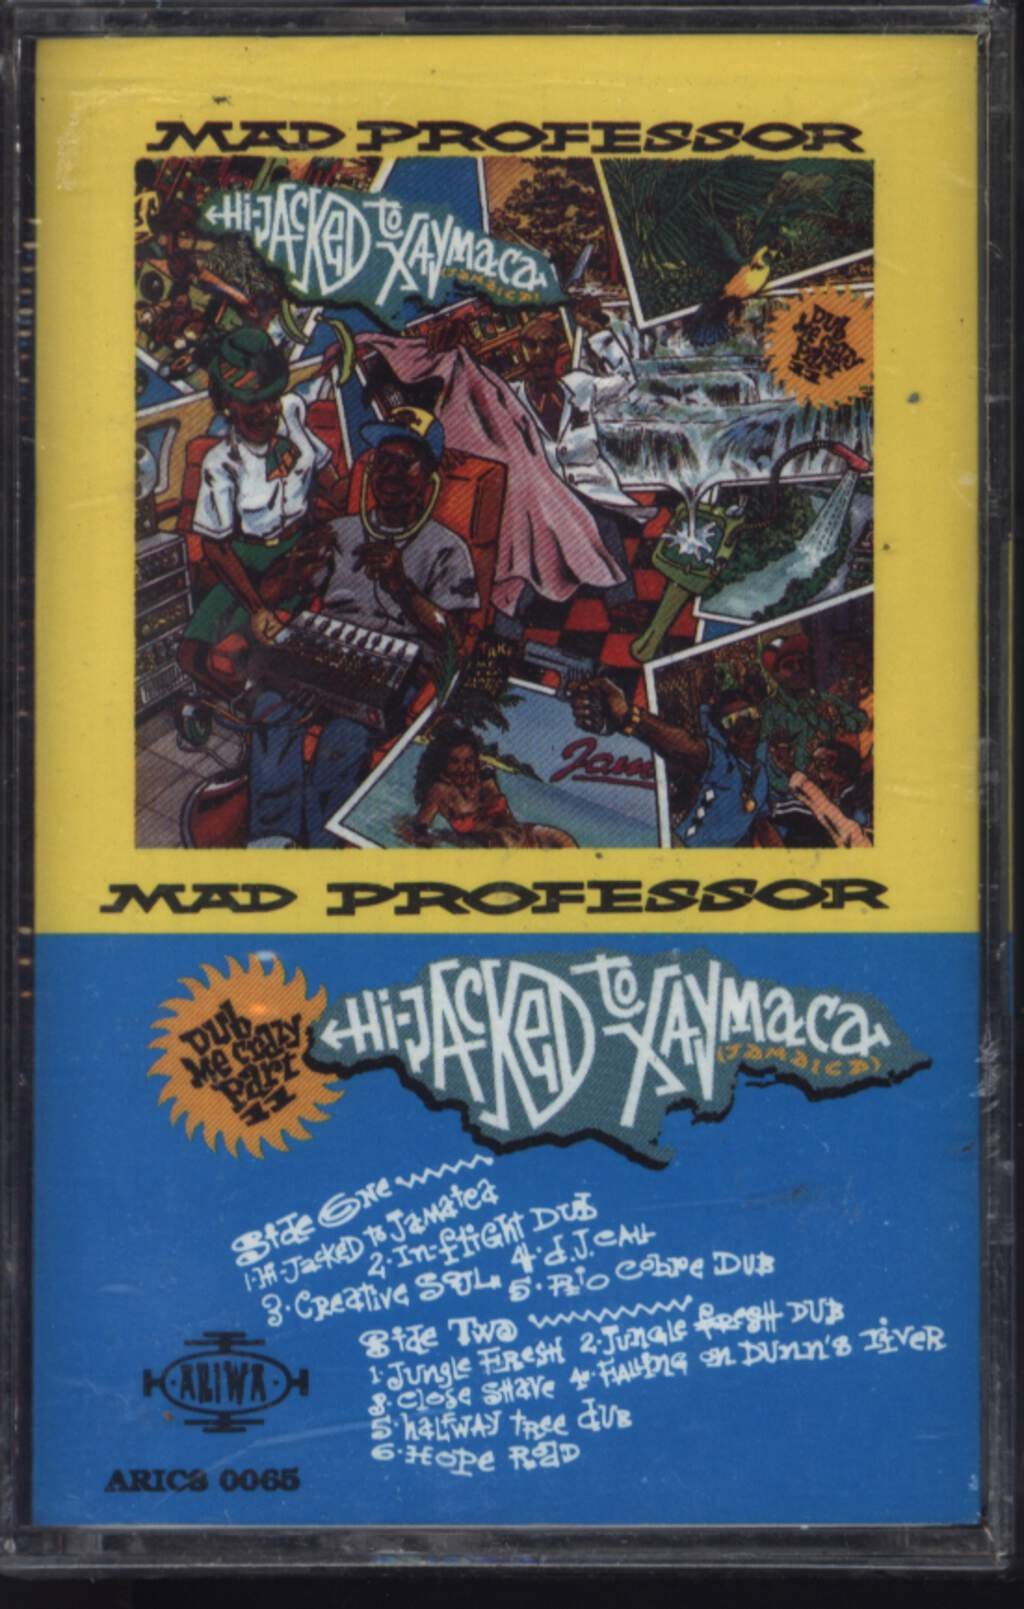 Mad Professor: Dub Me Crazy Part 11: Hi-Jacked To Xaymaca (Jamaica), Tape